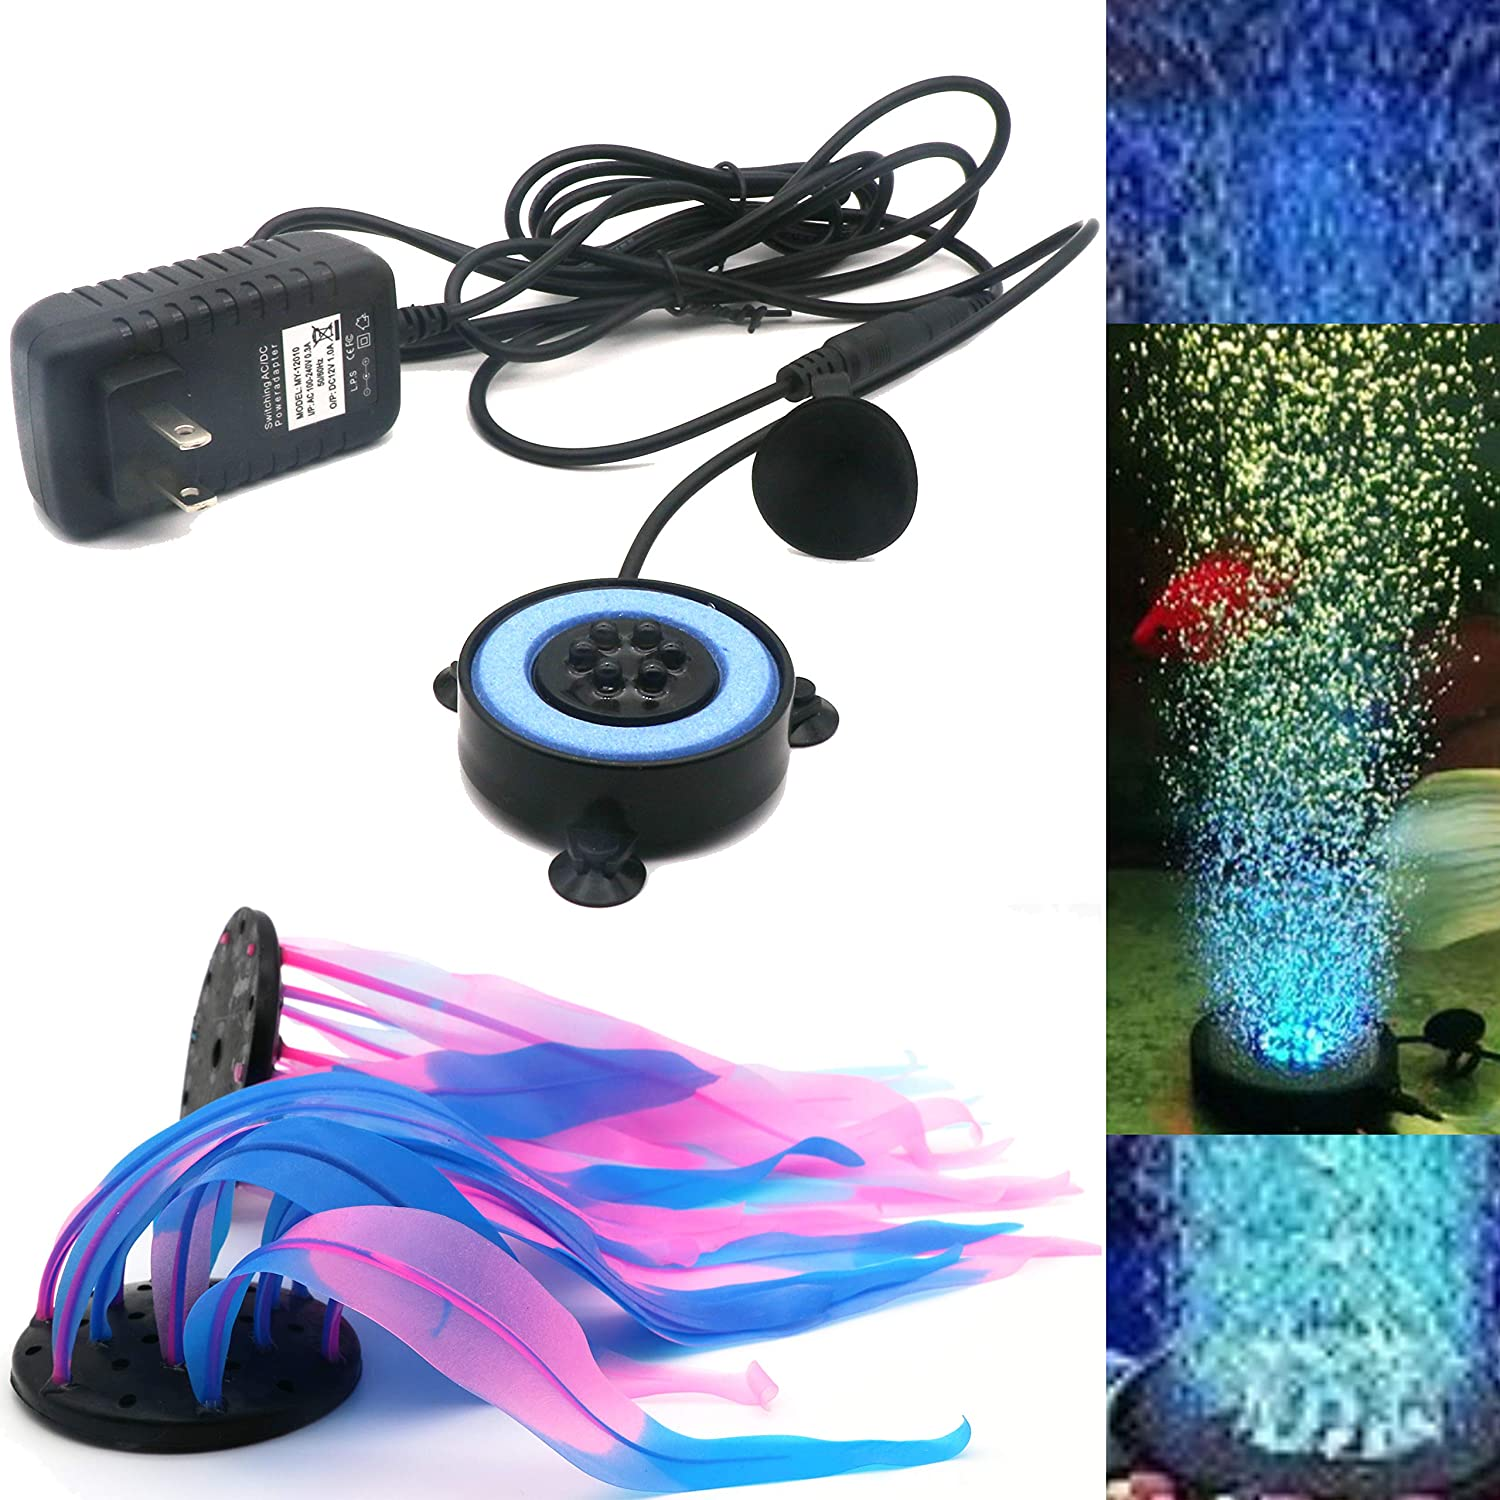 SunKni 2 Pack Glowing Effect Kelp Aquarium Decorations Plants Fish Tank Ornaments Artificial Floating Silicone Décor Landscape 7 Inches Seaweed Colorful